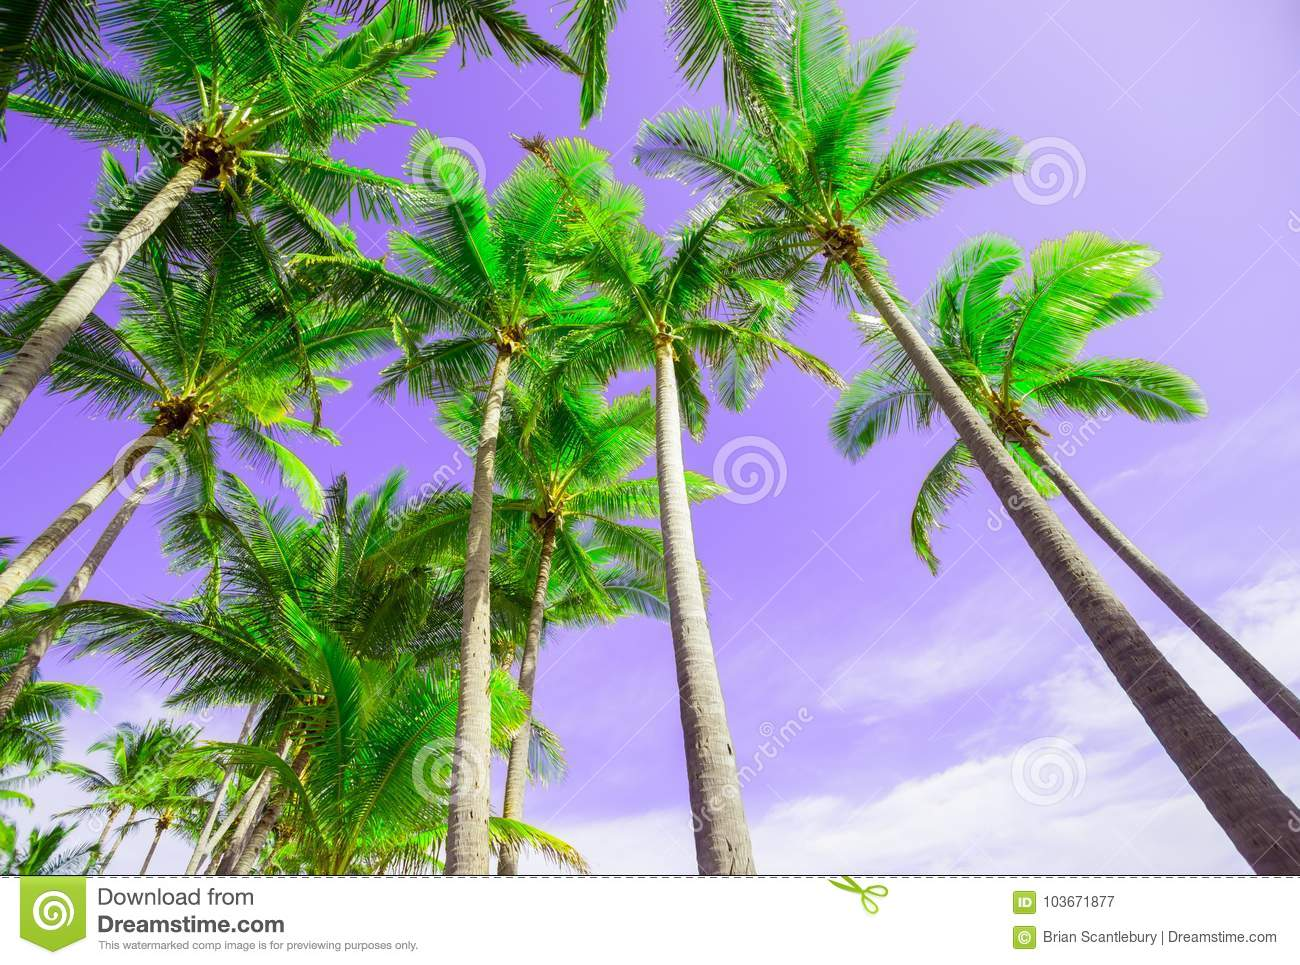 Summer Colors Palm Trees Image. Stock Image - Image of flora ...